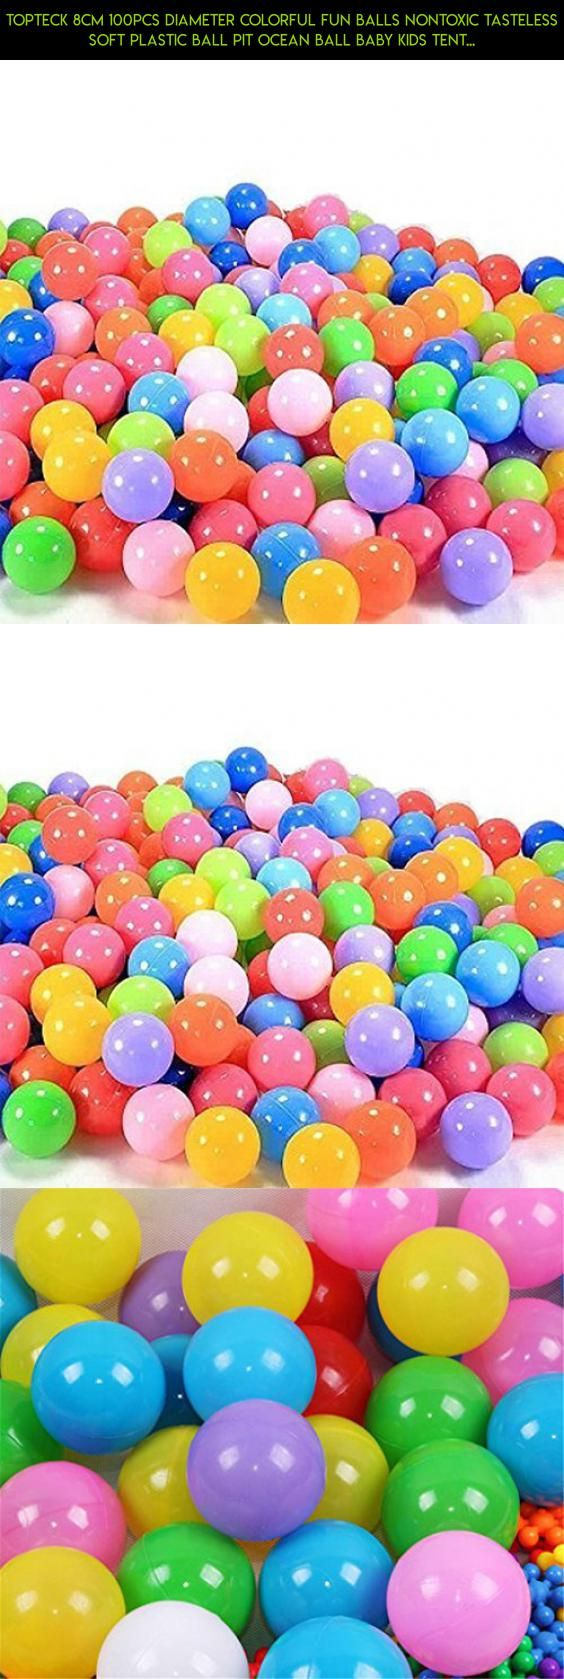 Topteck 8cm 100pcs Diameter Colorful Fun Balls Nontoxic Tasteless Soft Plastic Ball Pit Ocean Ball Baby Kids Tent Swim Toys Ball #dog #kit #products #technology #camera #racing #parts #plans #proof #tech #gadgets #drone #fpv #shopping #pools